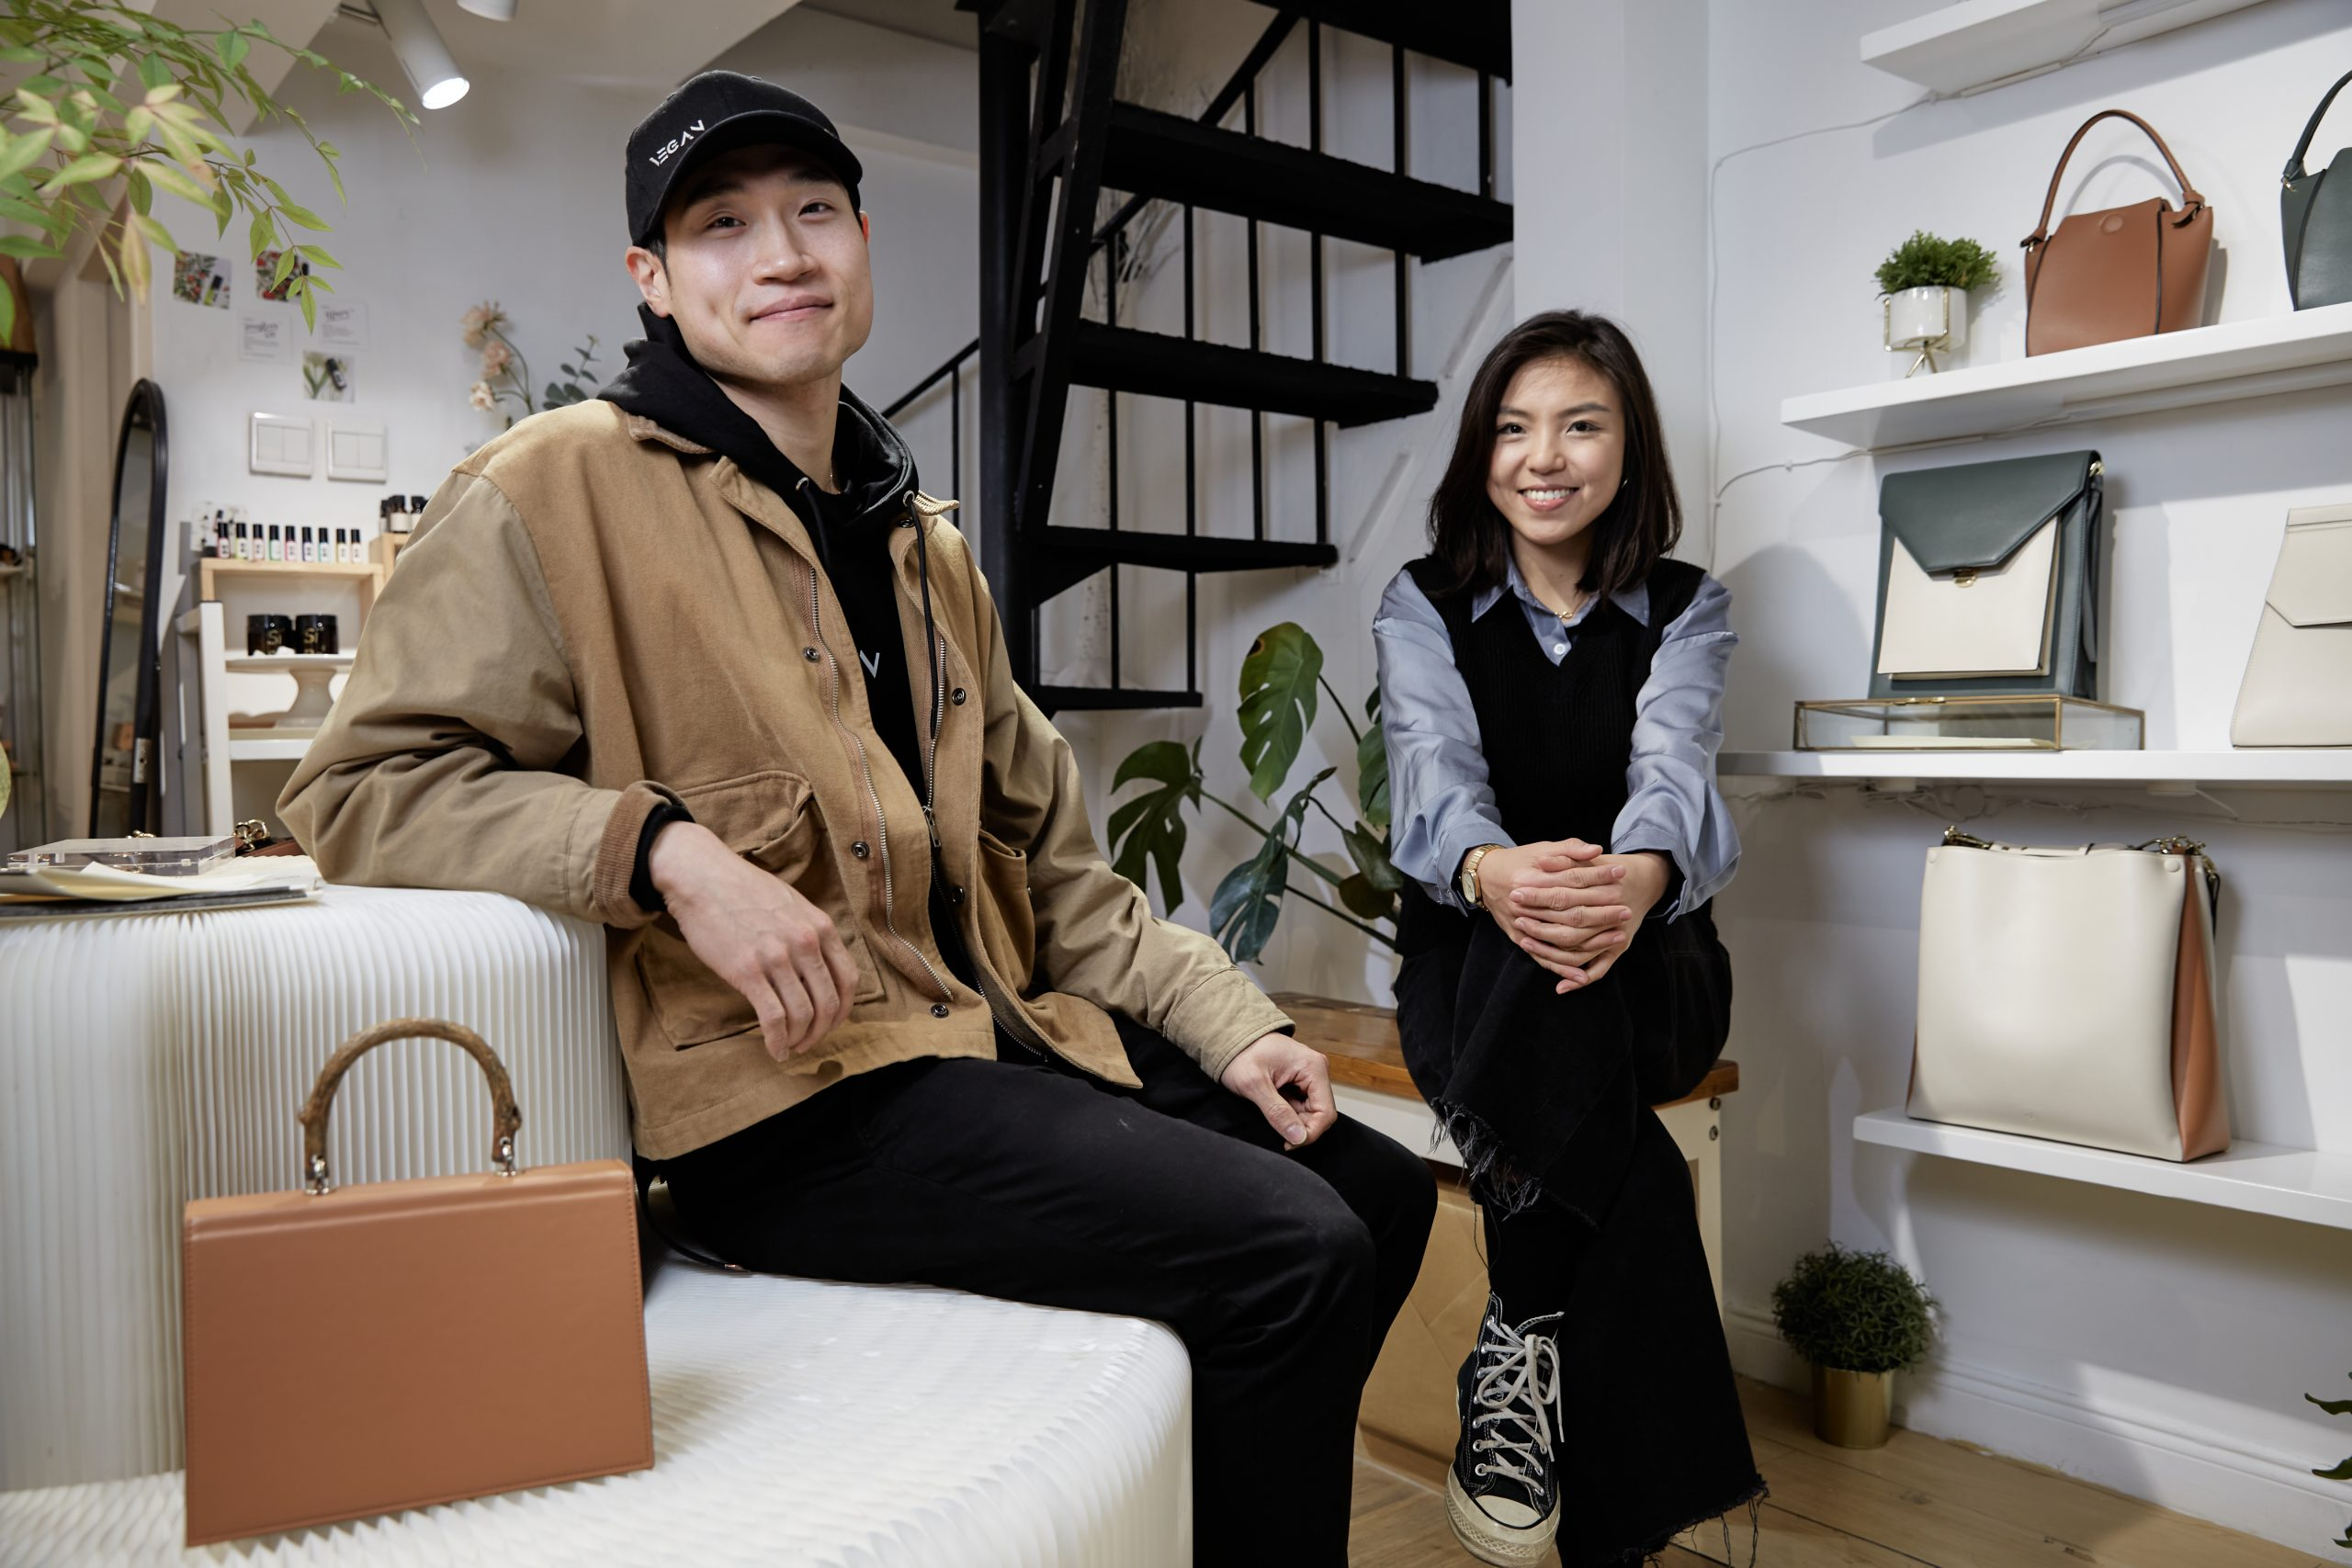 O.N.E's Xenia Wong and Simpson Lee - Photo by António Sanmarful